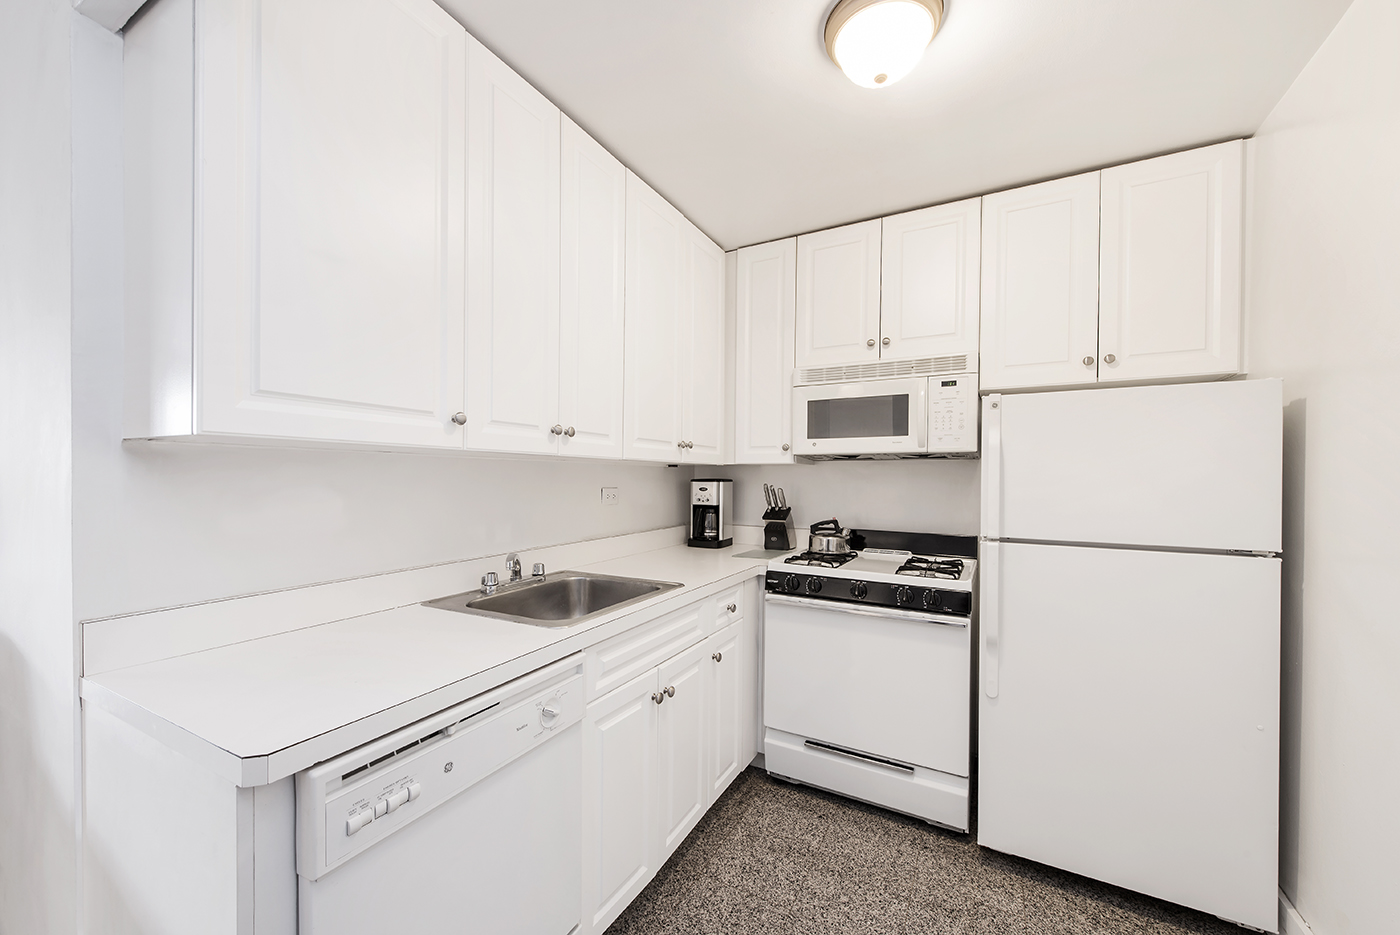 Kitchen at 60 East 12th Street Apartments